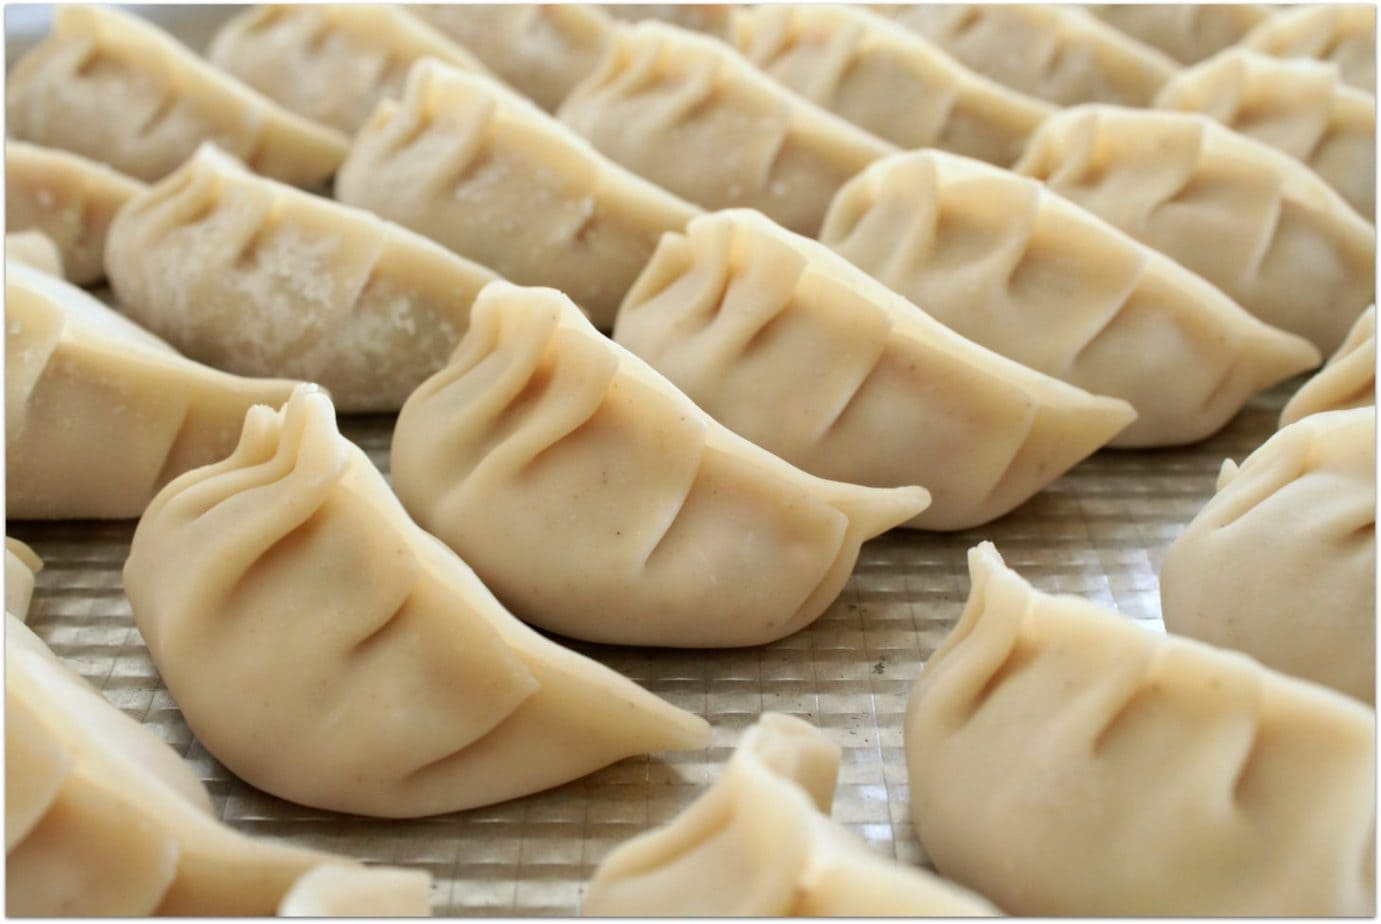 A tray of homemade dumplings